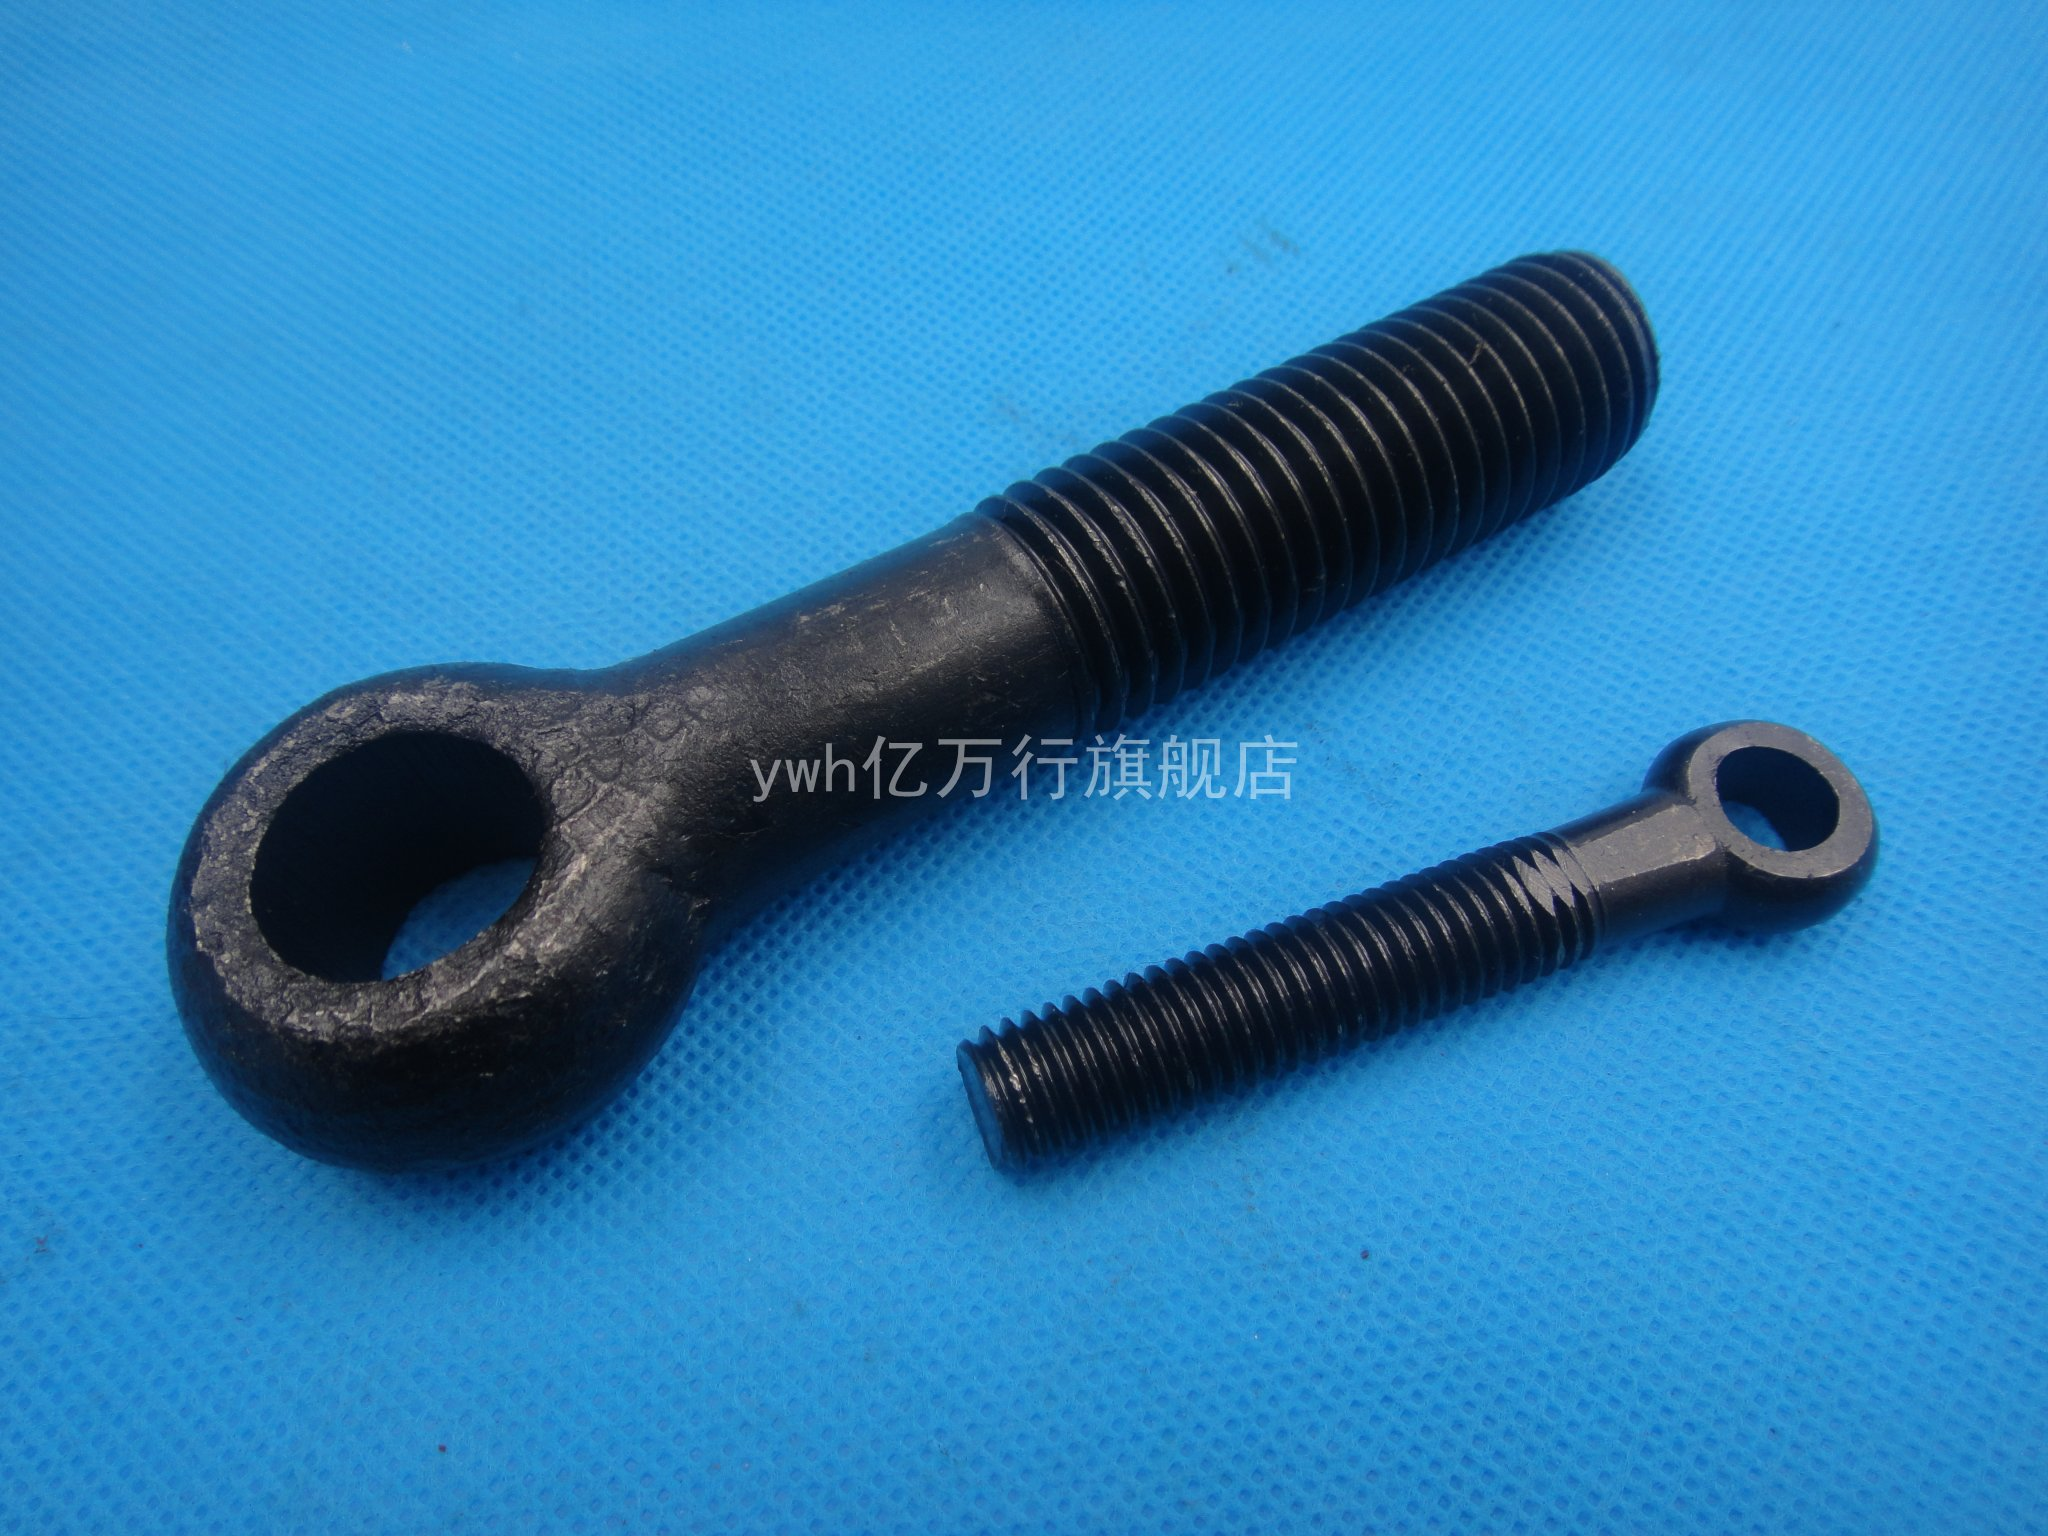 Statements were made by the black level 4.8 oillet gb798 articulated screw loose bolt hole bolt m16 * 60-80-250